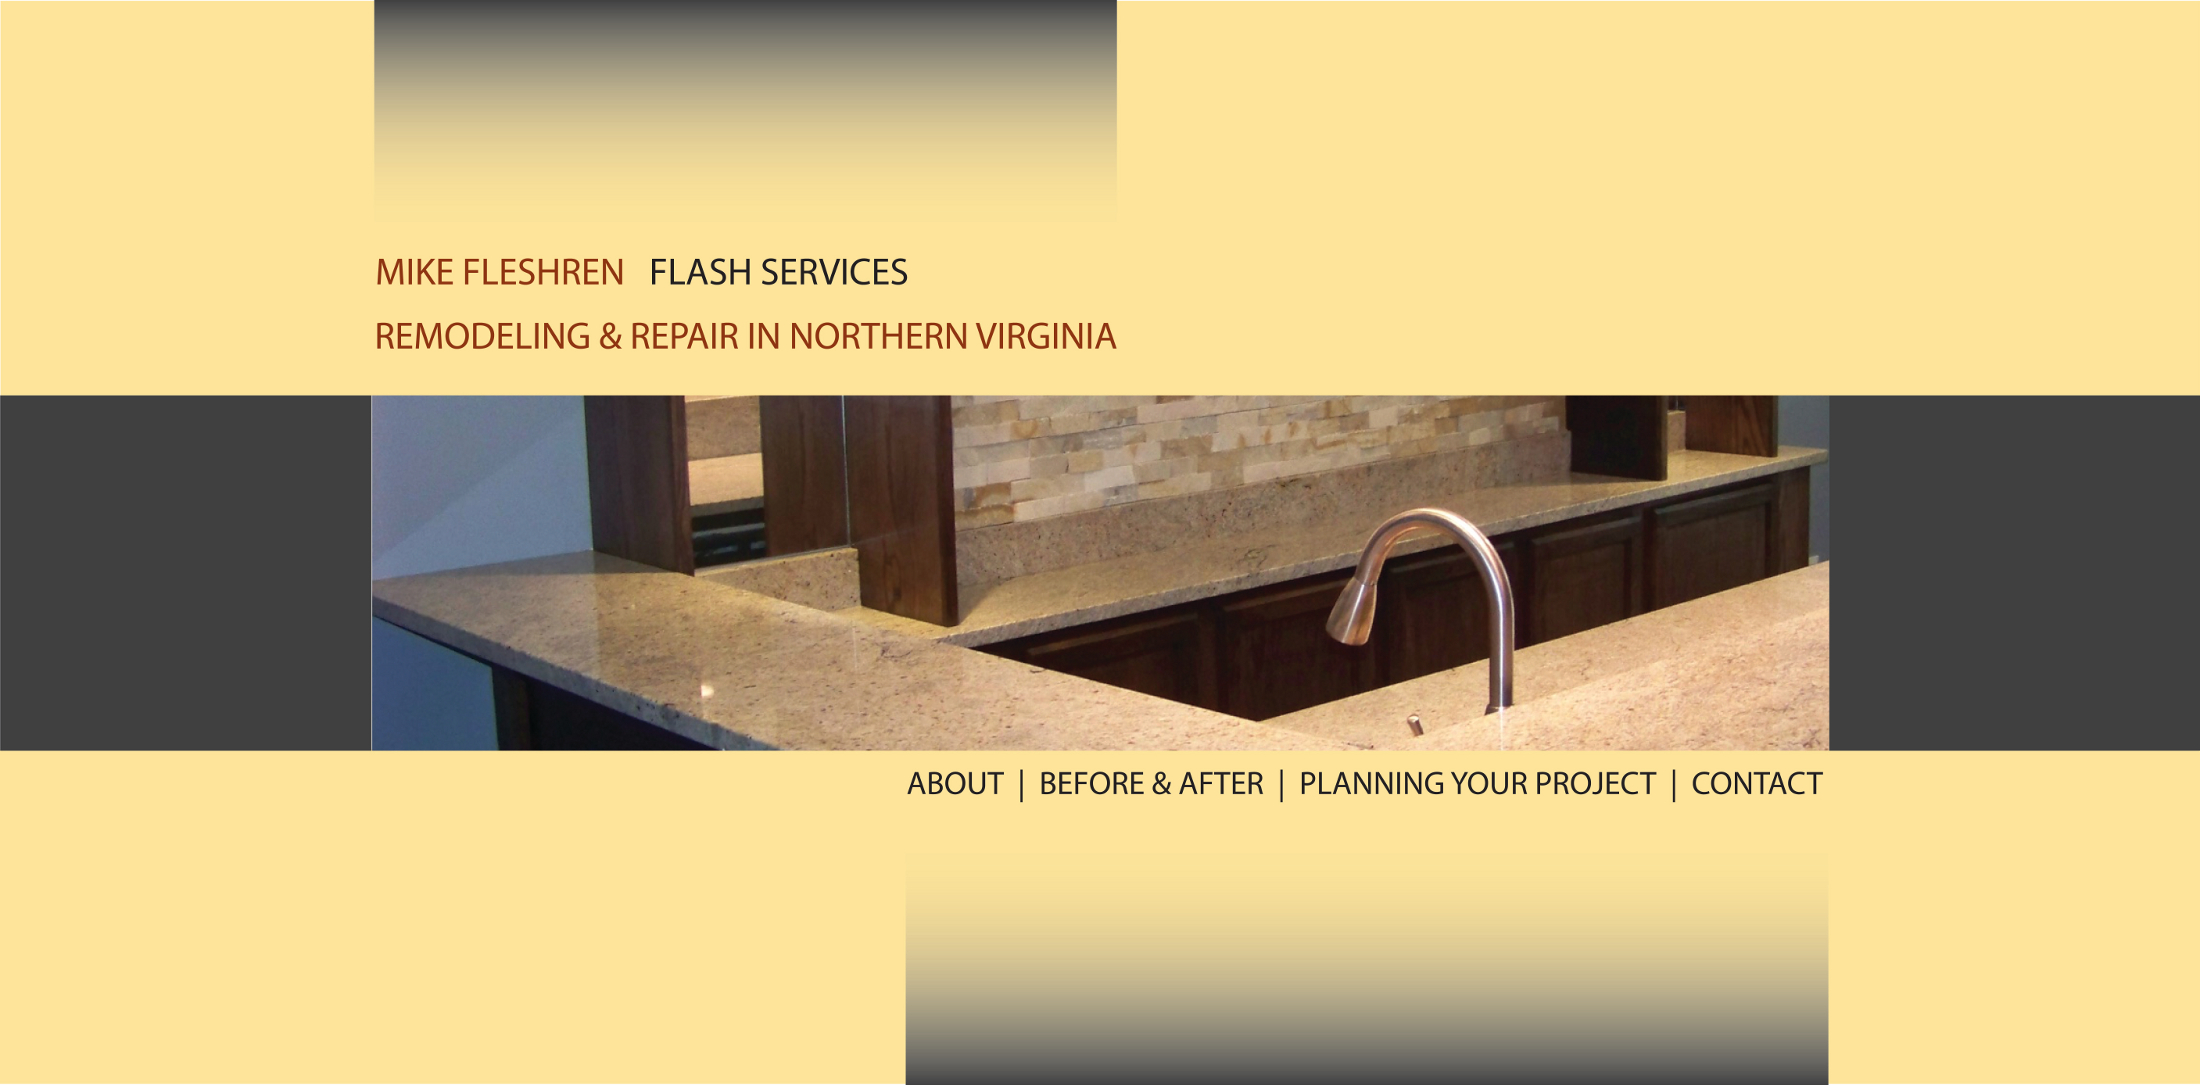 Mike Fleshren, Flash Services, Remodeling & Repair in Northern Virginia